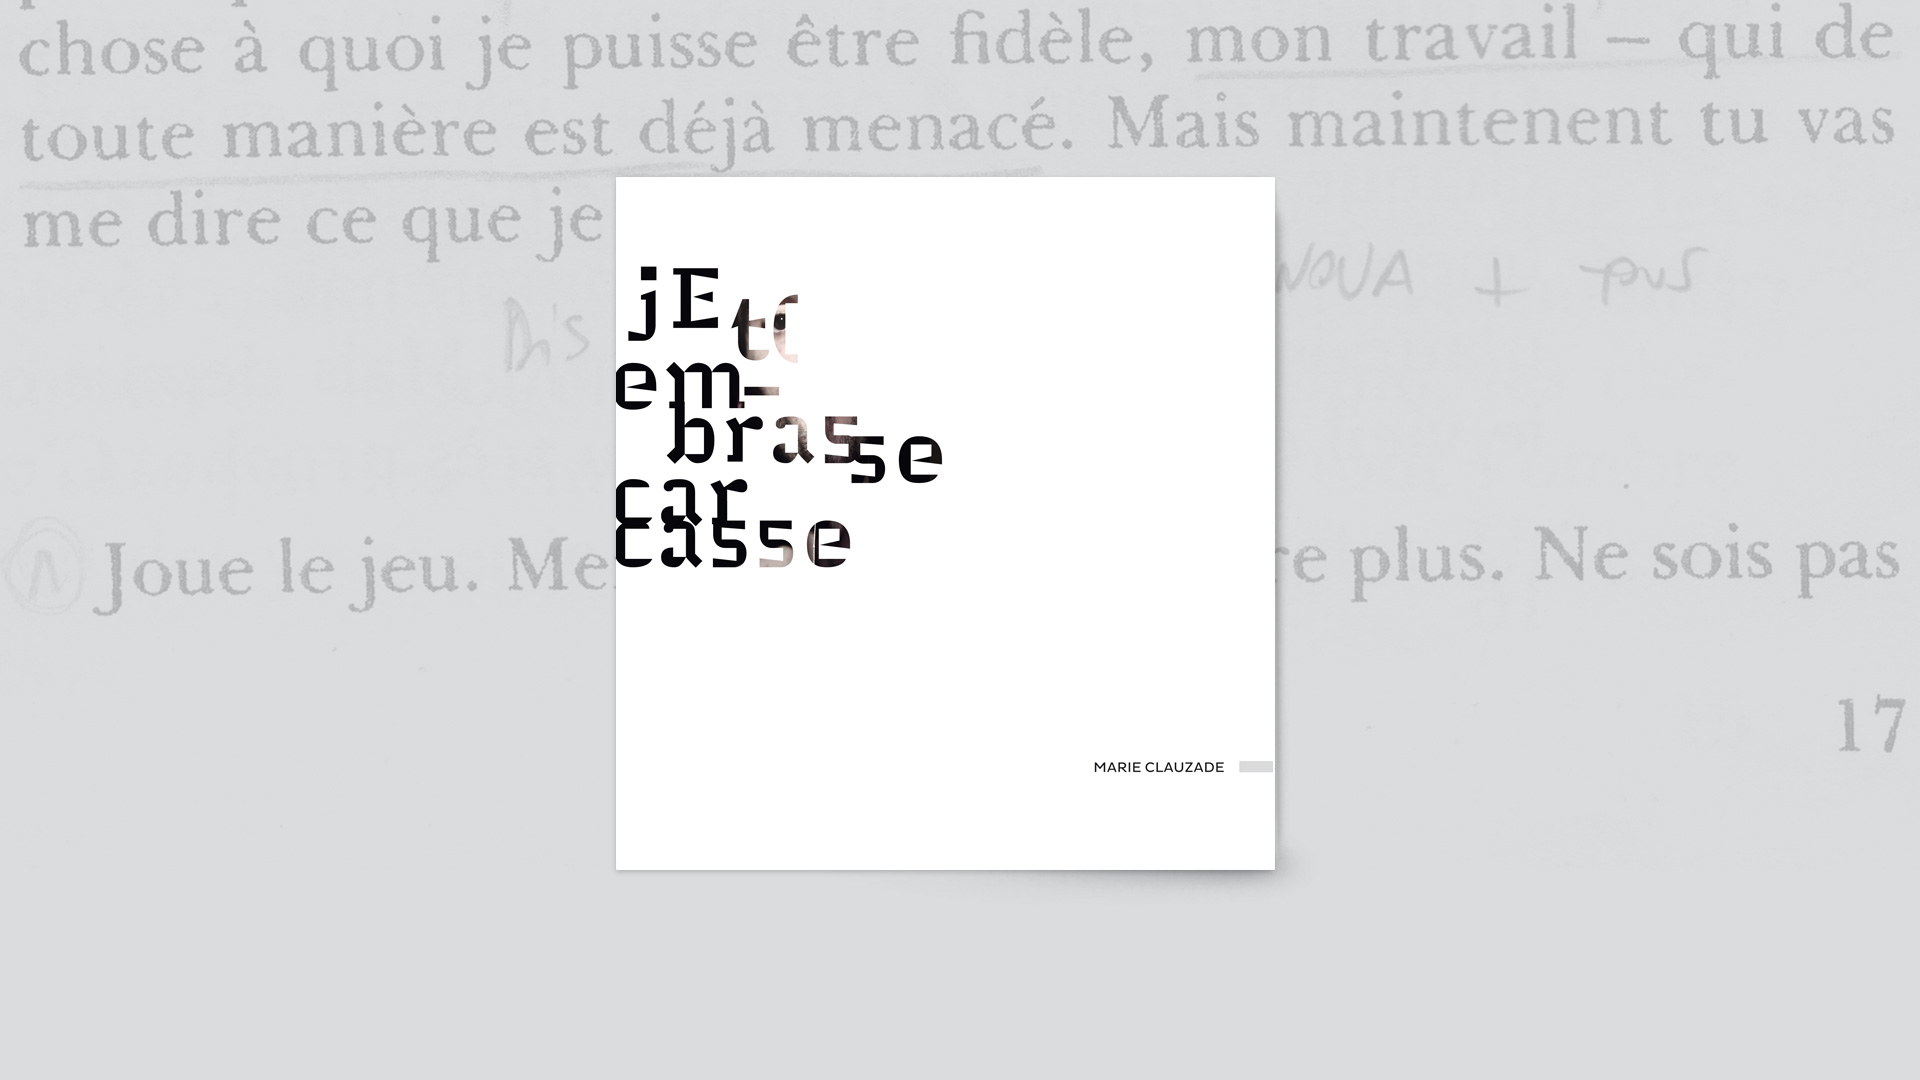 catalogue - jE t(embrasse carcasse - © Marie Clauzade - La Bulle Bleue - Les Éditions de l'Appartement